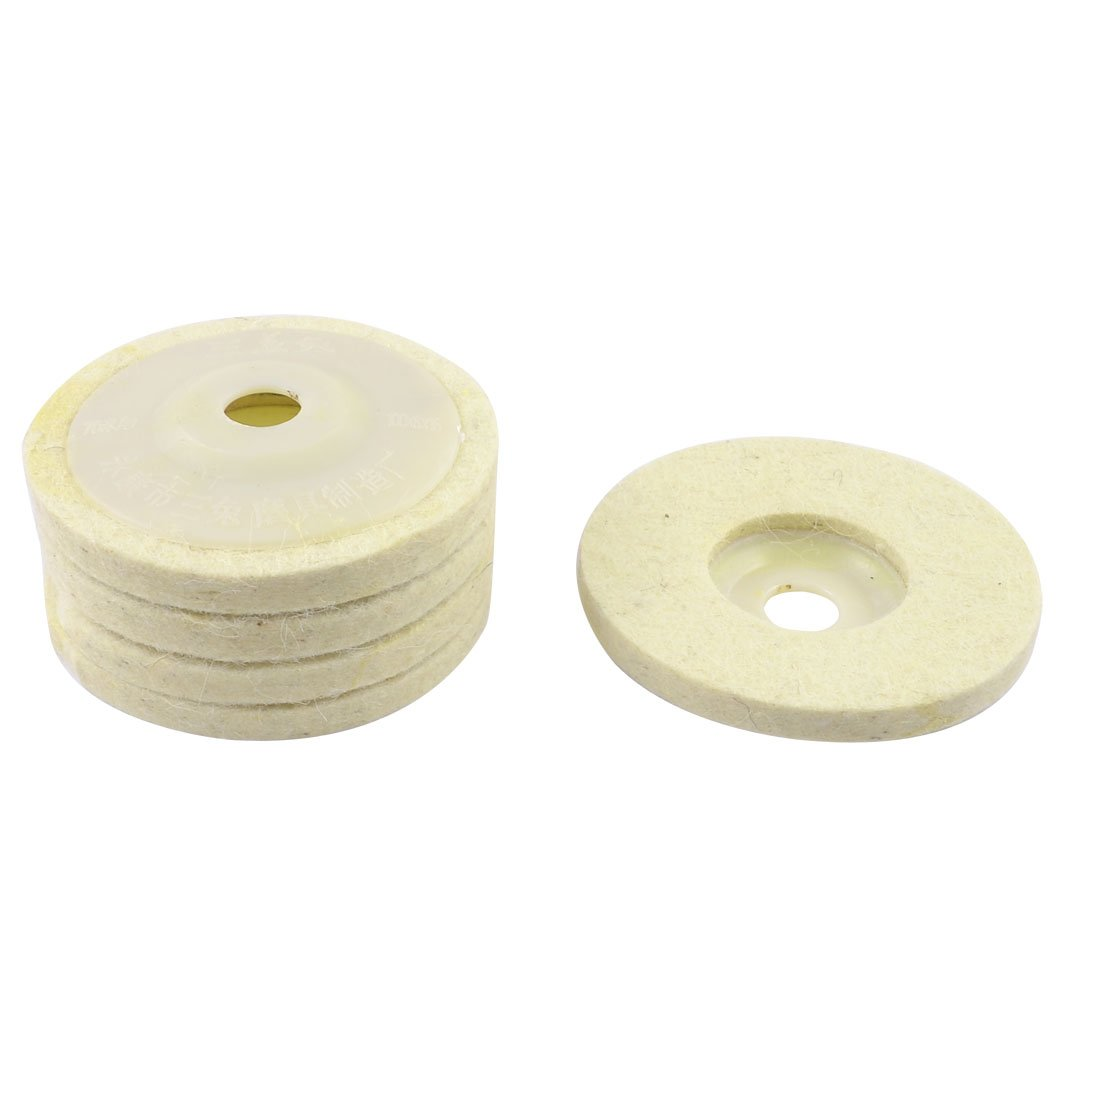 CNIM Hot 5 Pcs Off White Wool Felt Polishing Disc Wheel Pad 100mm x 10mm x 16mm